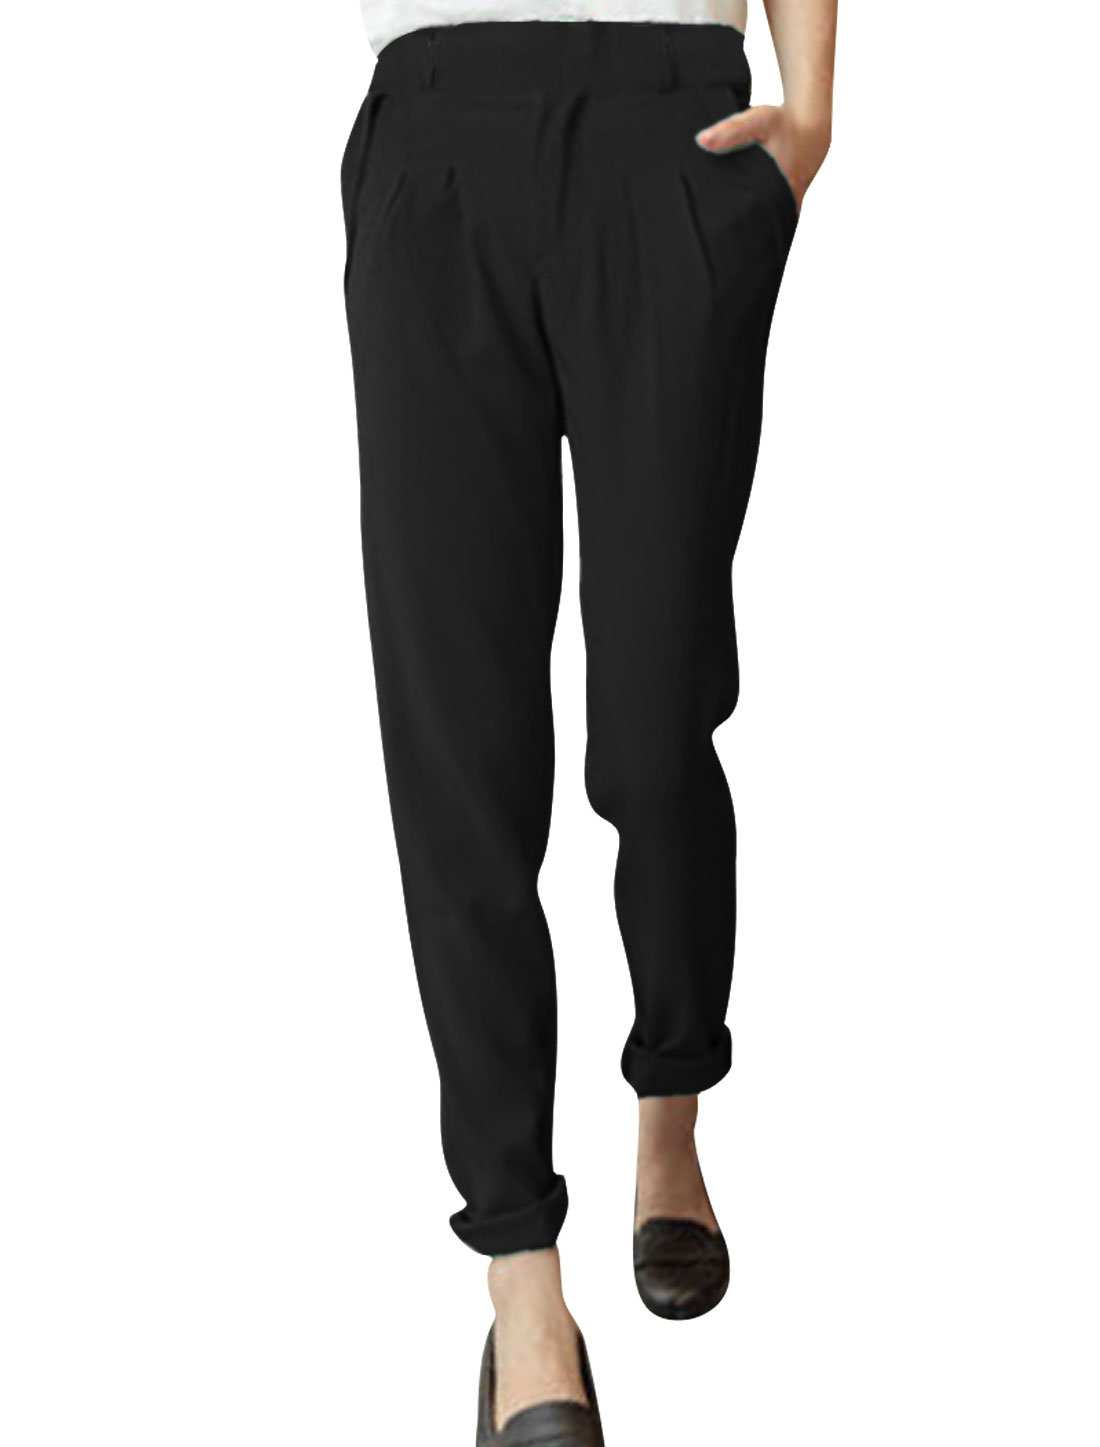 Ladies Low Rise Front Pockets Zip Fly Straight Trousers Black S